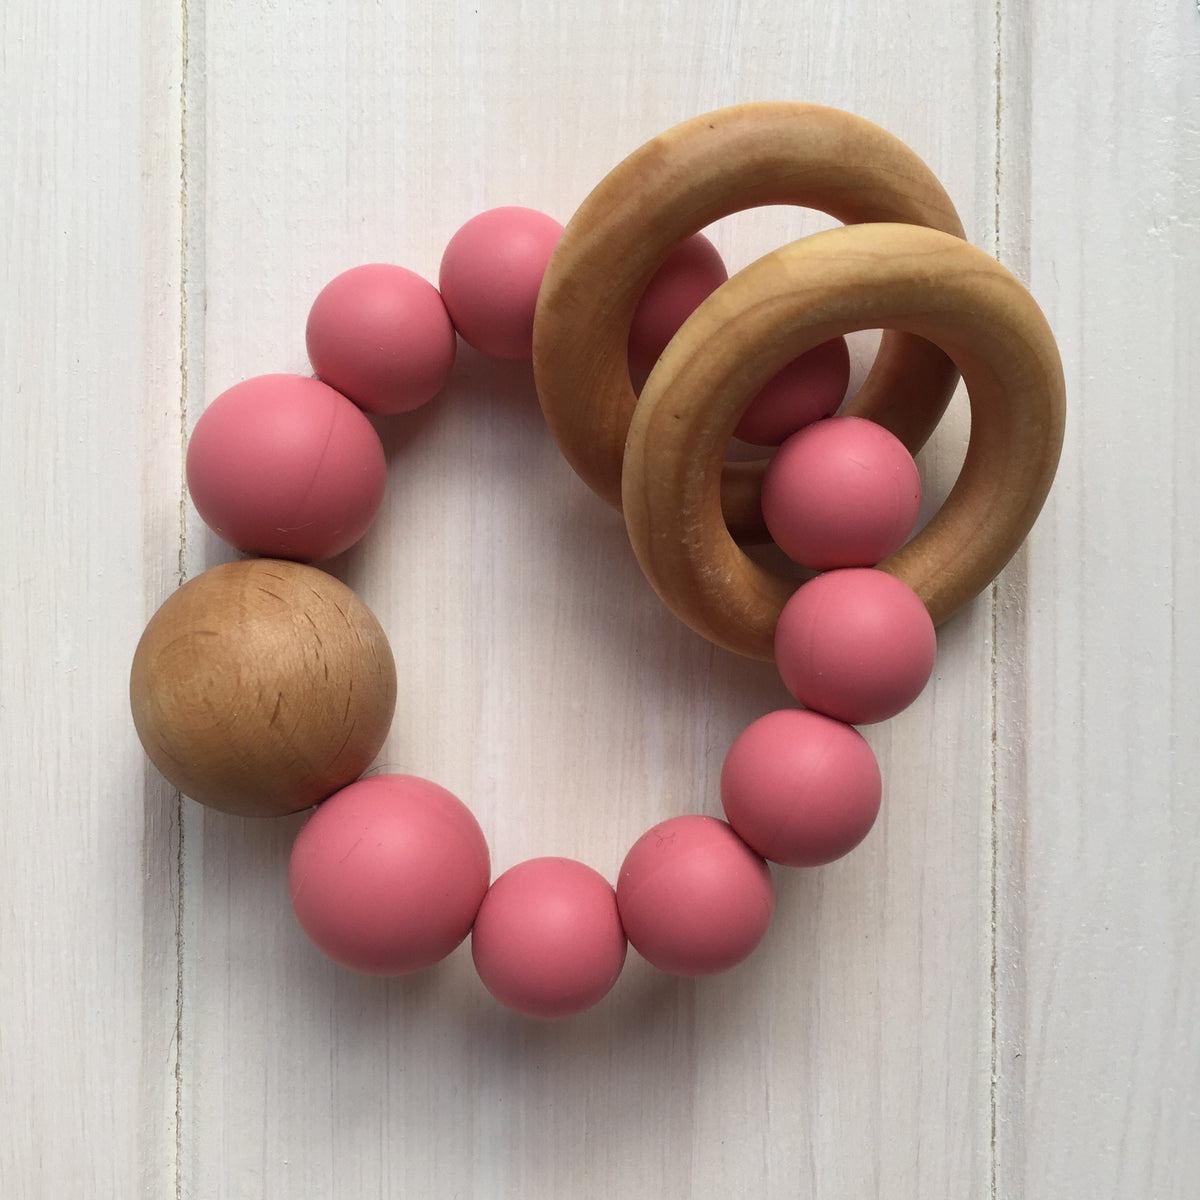 Strawberry Pink Silicone Teething Rattle